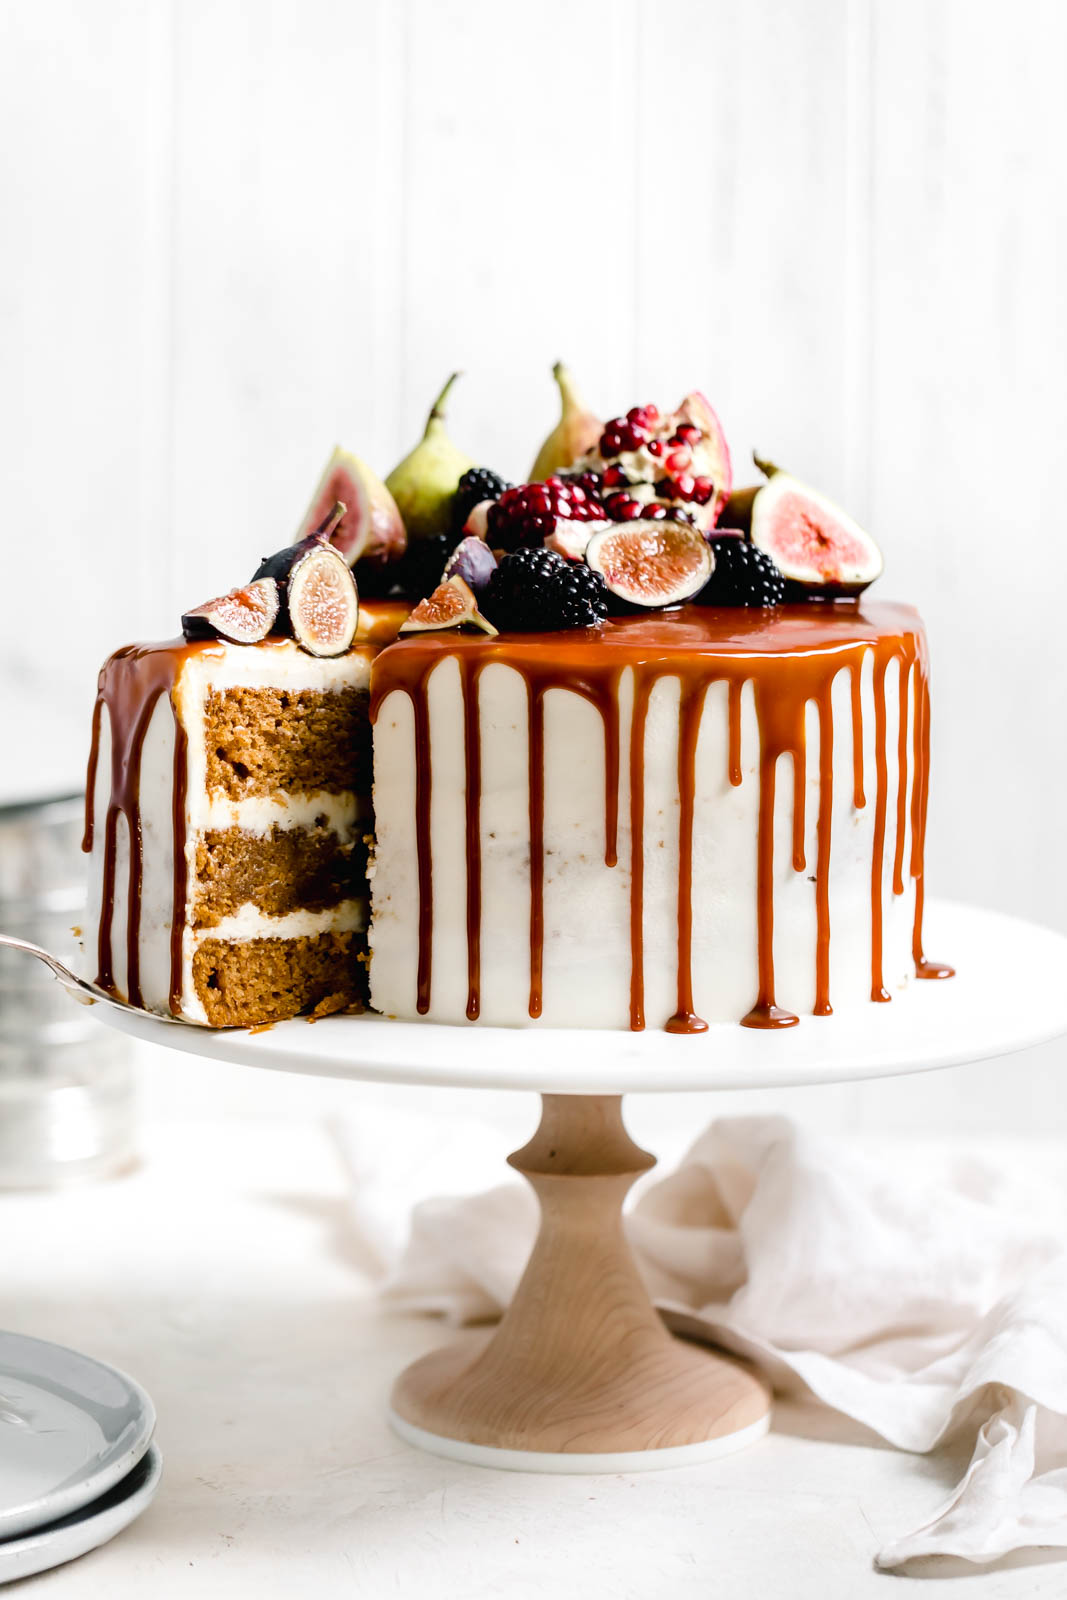 sliced Pumpkin cake on a cake stand